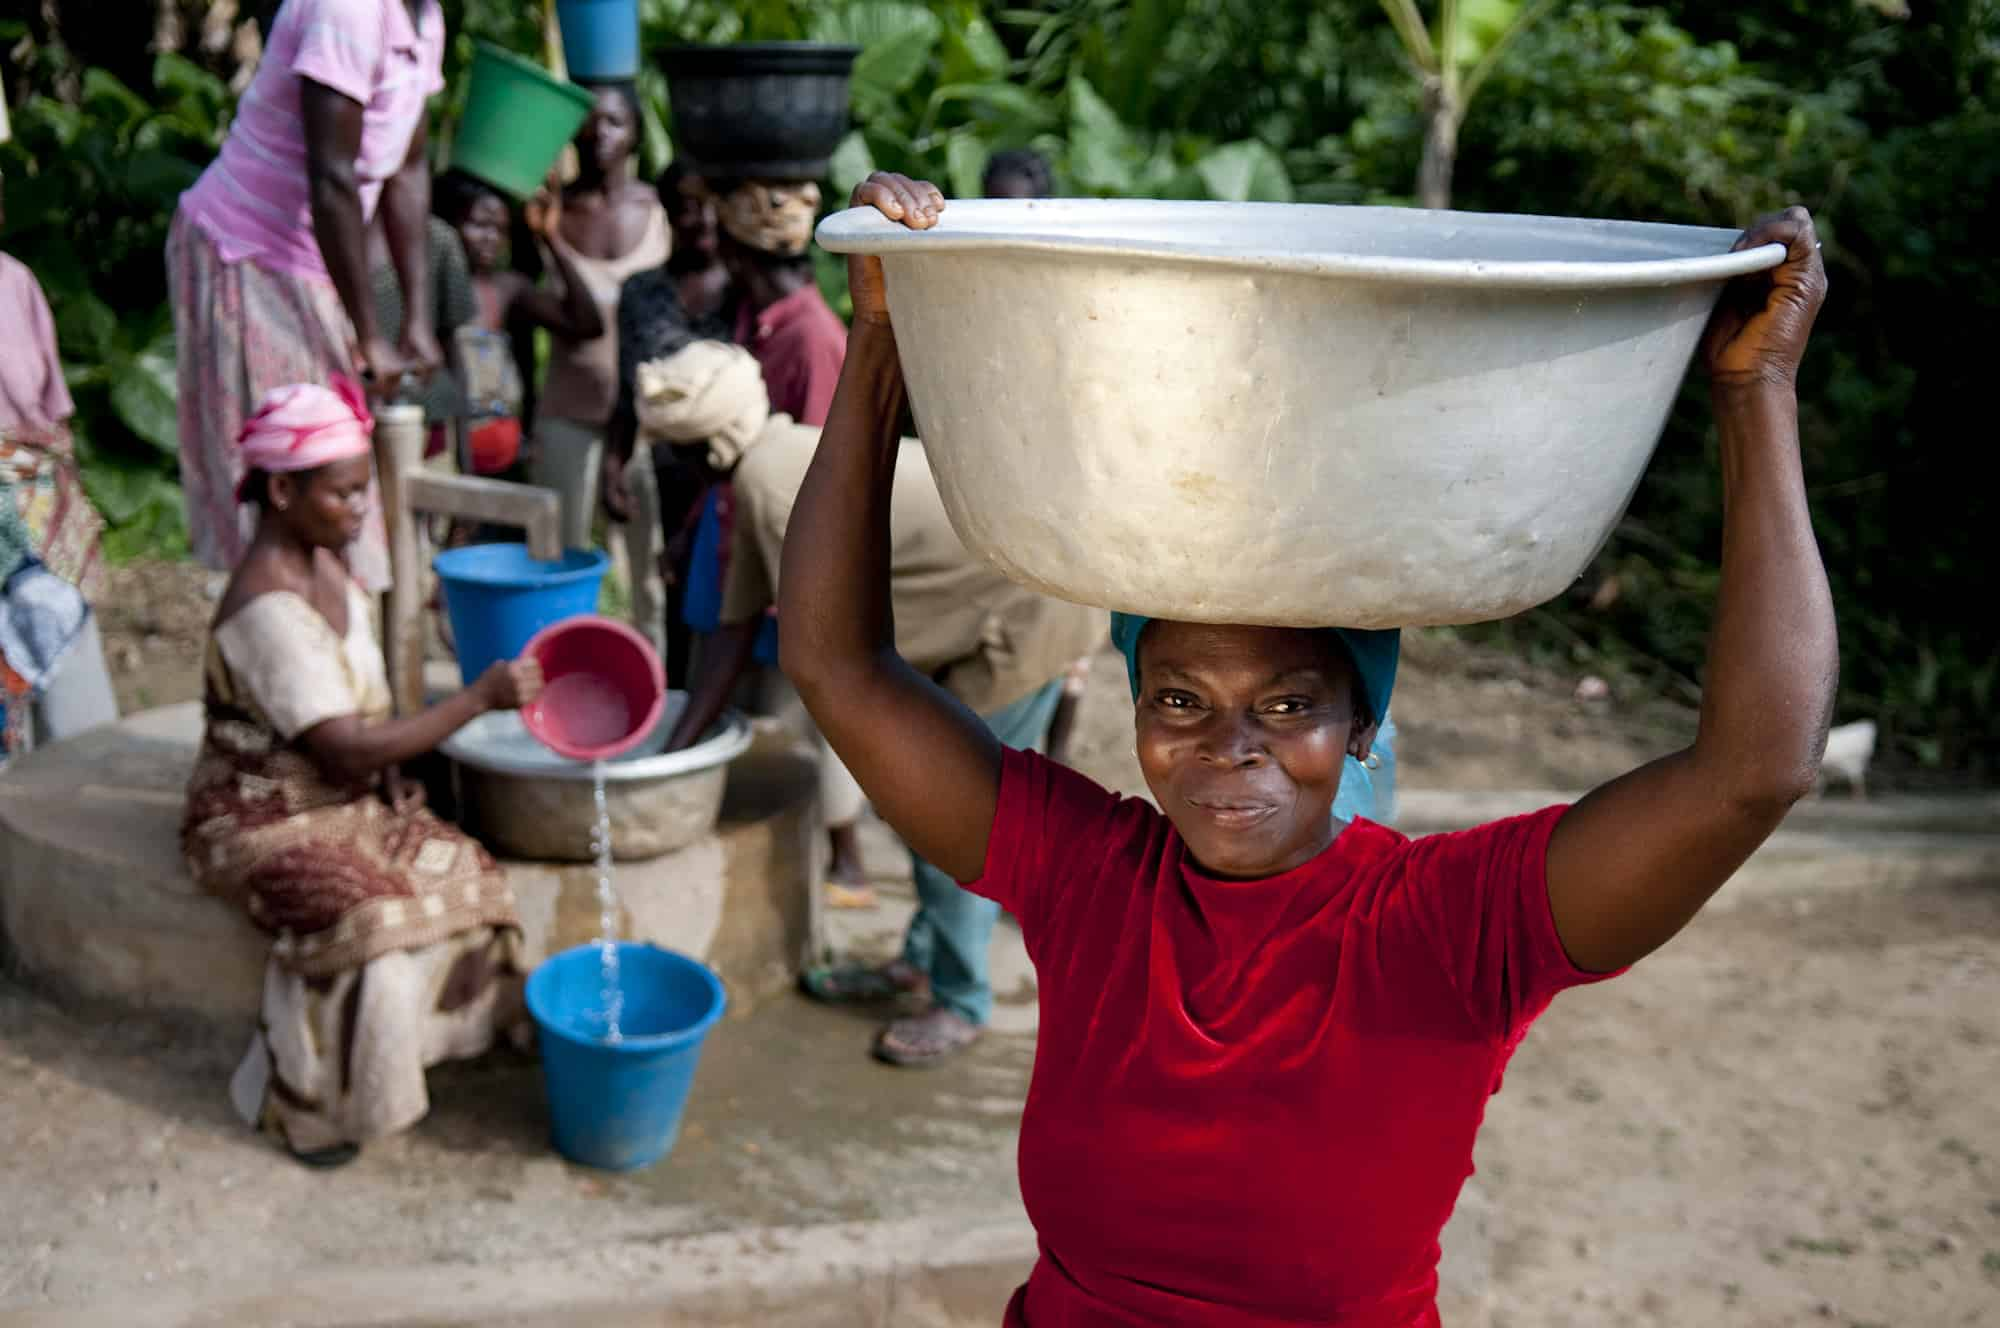 Women getting water in Africa